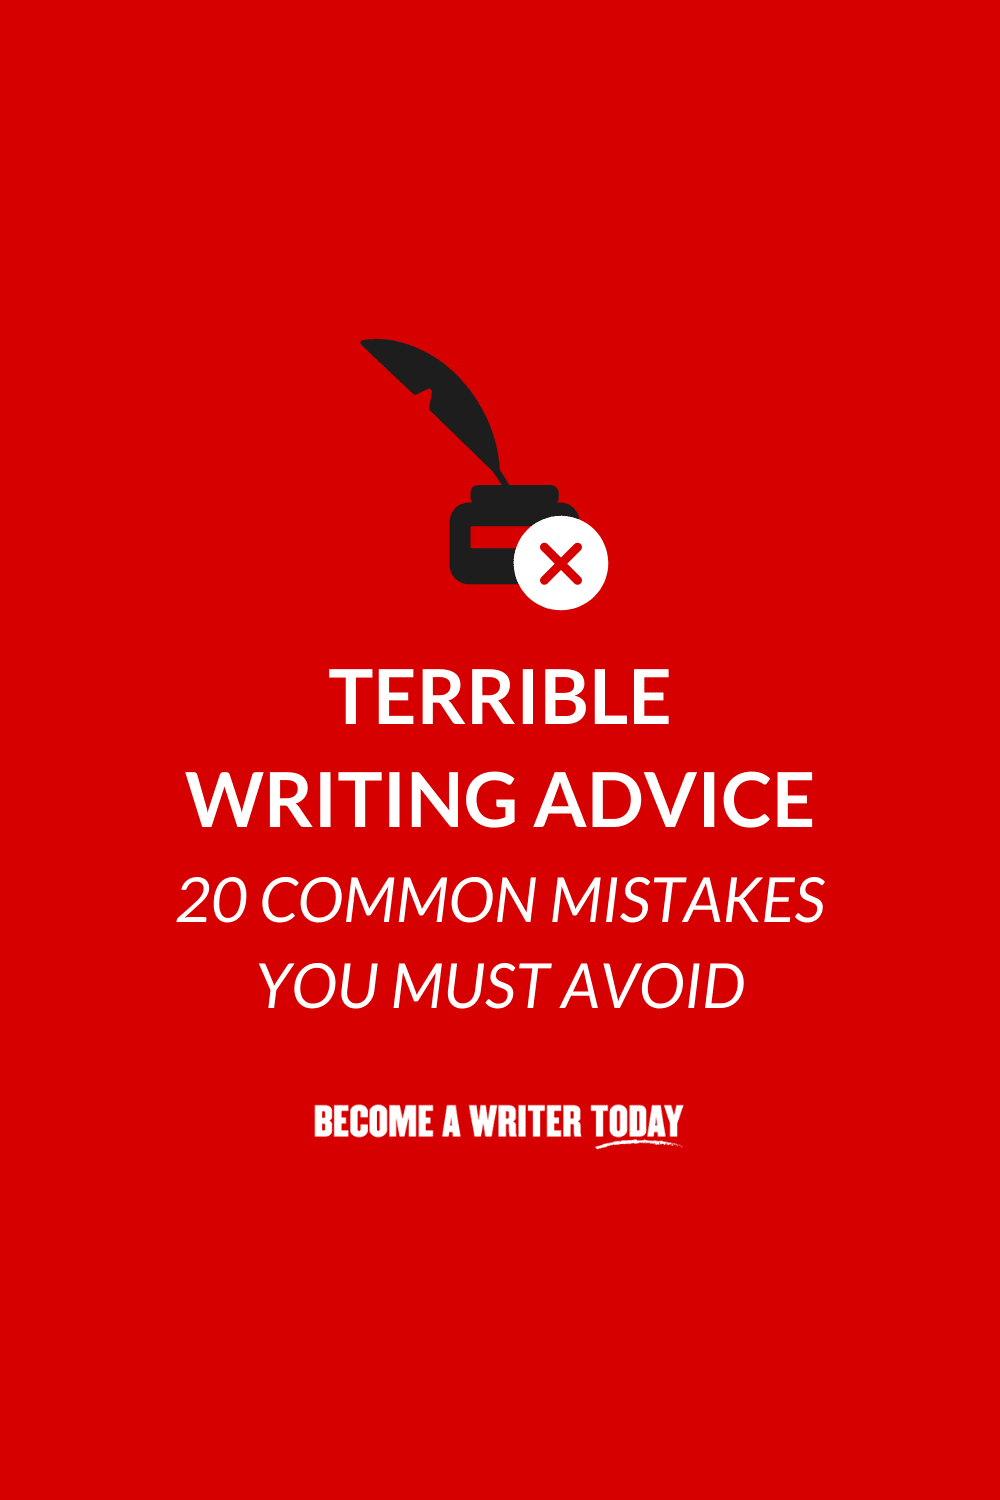 Terrible Writing Advice: 20 Common Mistakes You Must Avoid